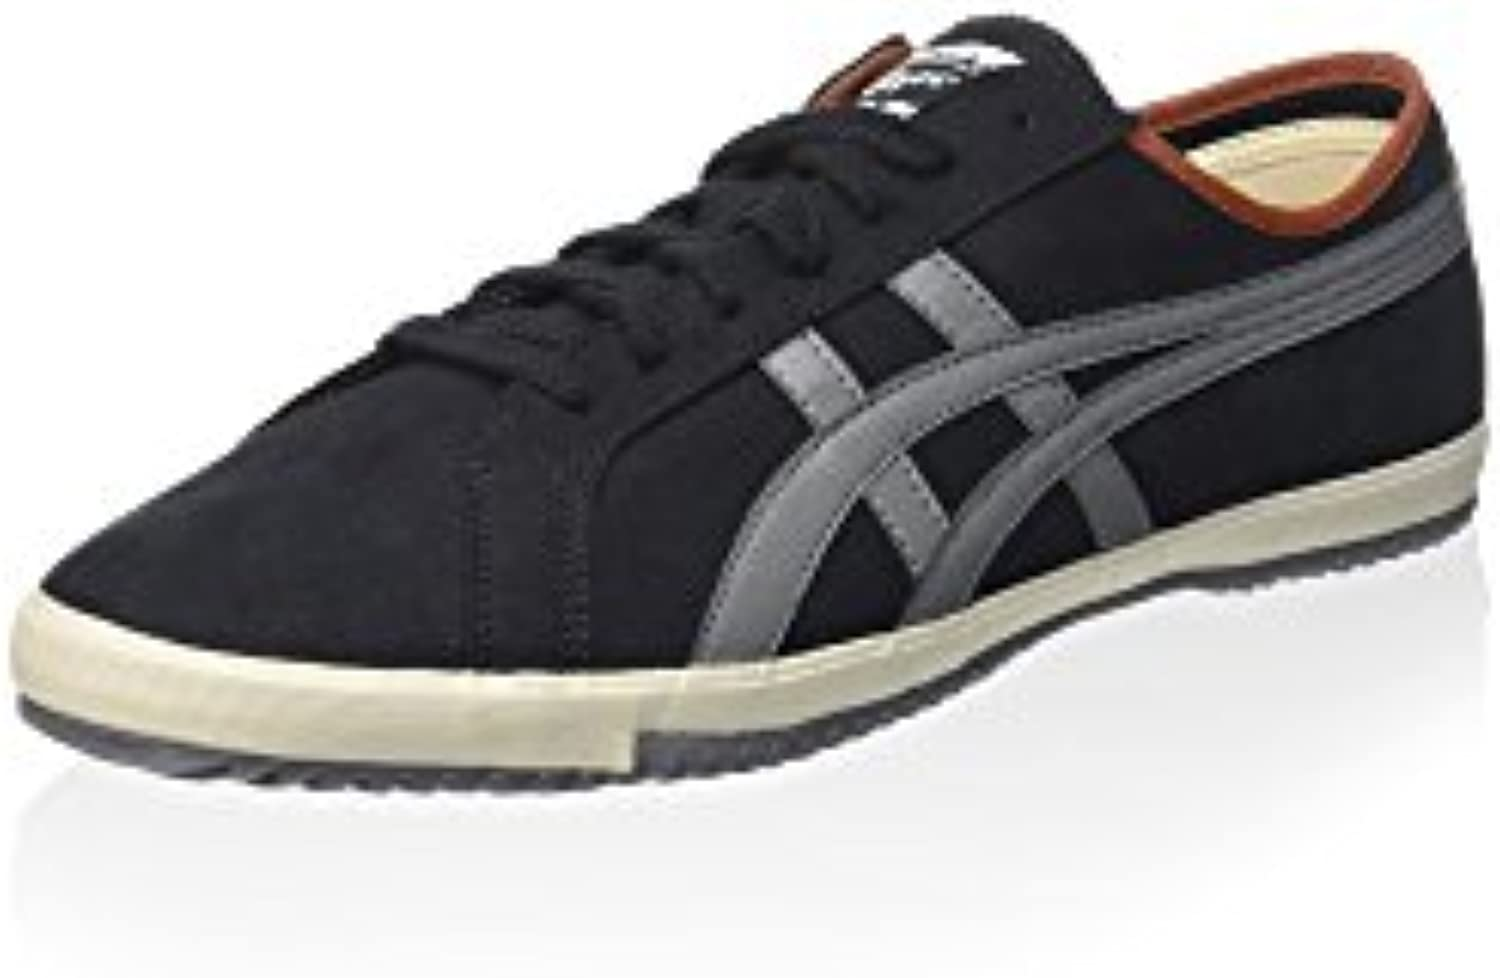 Onitsuka Tiger Retro Glide Black Dark Grey D3X0Y9016 Turnschuhe